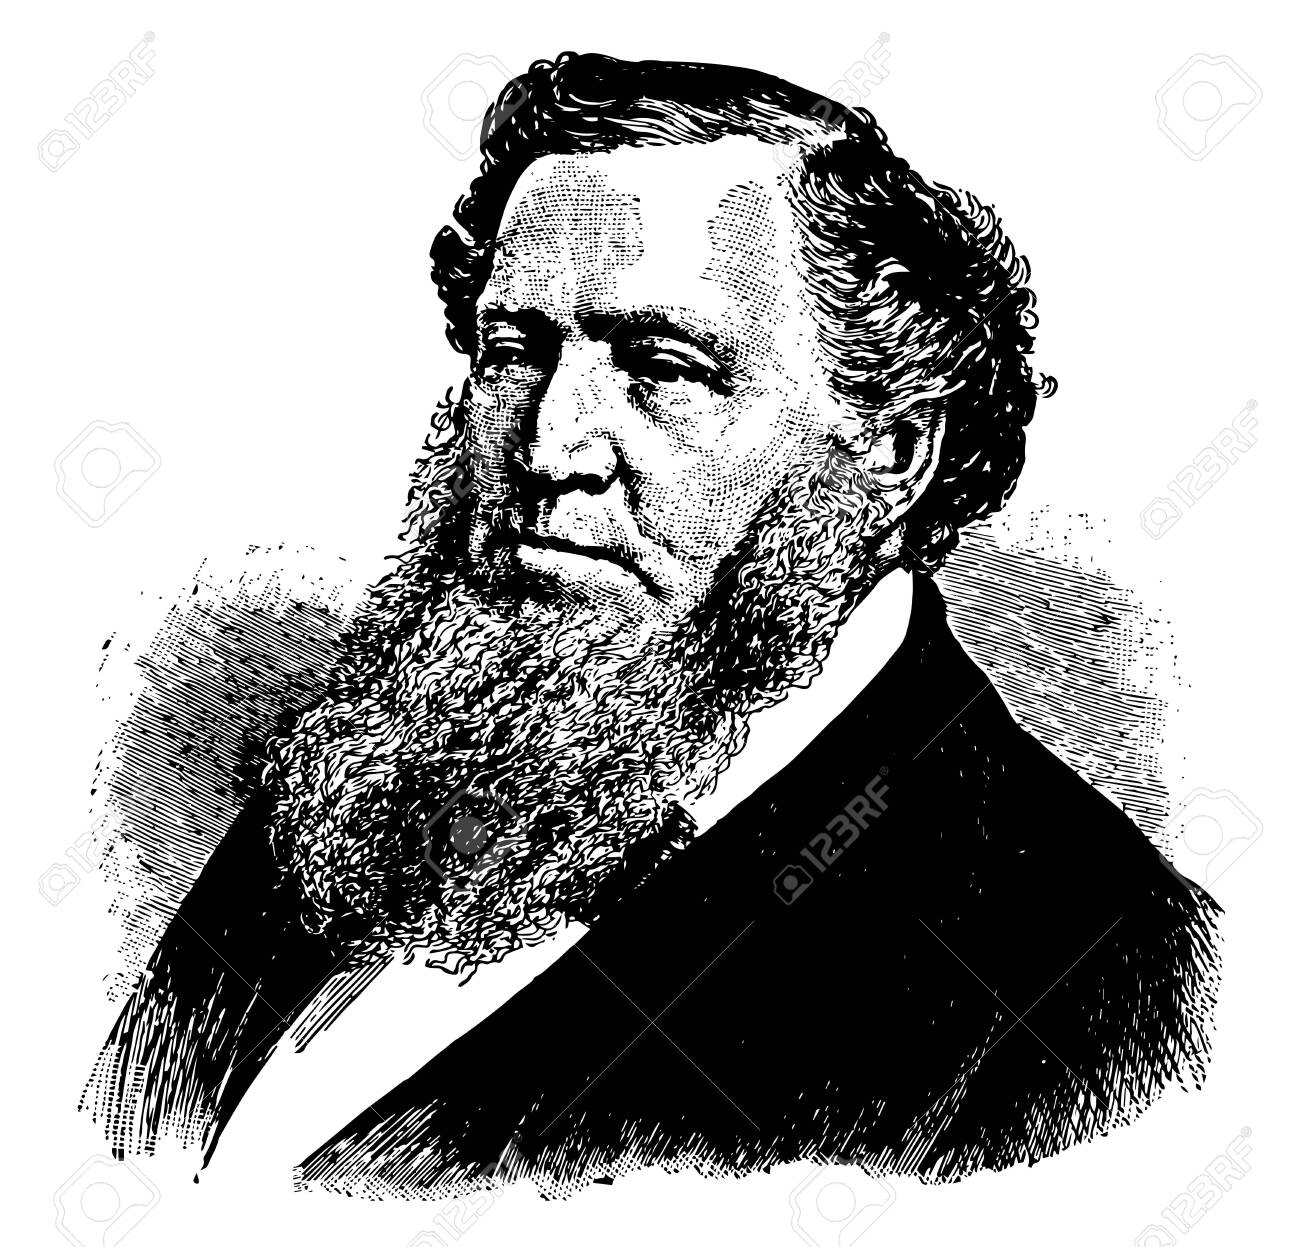 Brigham Young 1801 to 1877 he was an American leader politician and the first governor of the Utah Territory vintage line drawing or engraving illustration - 133236401